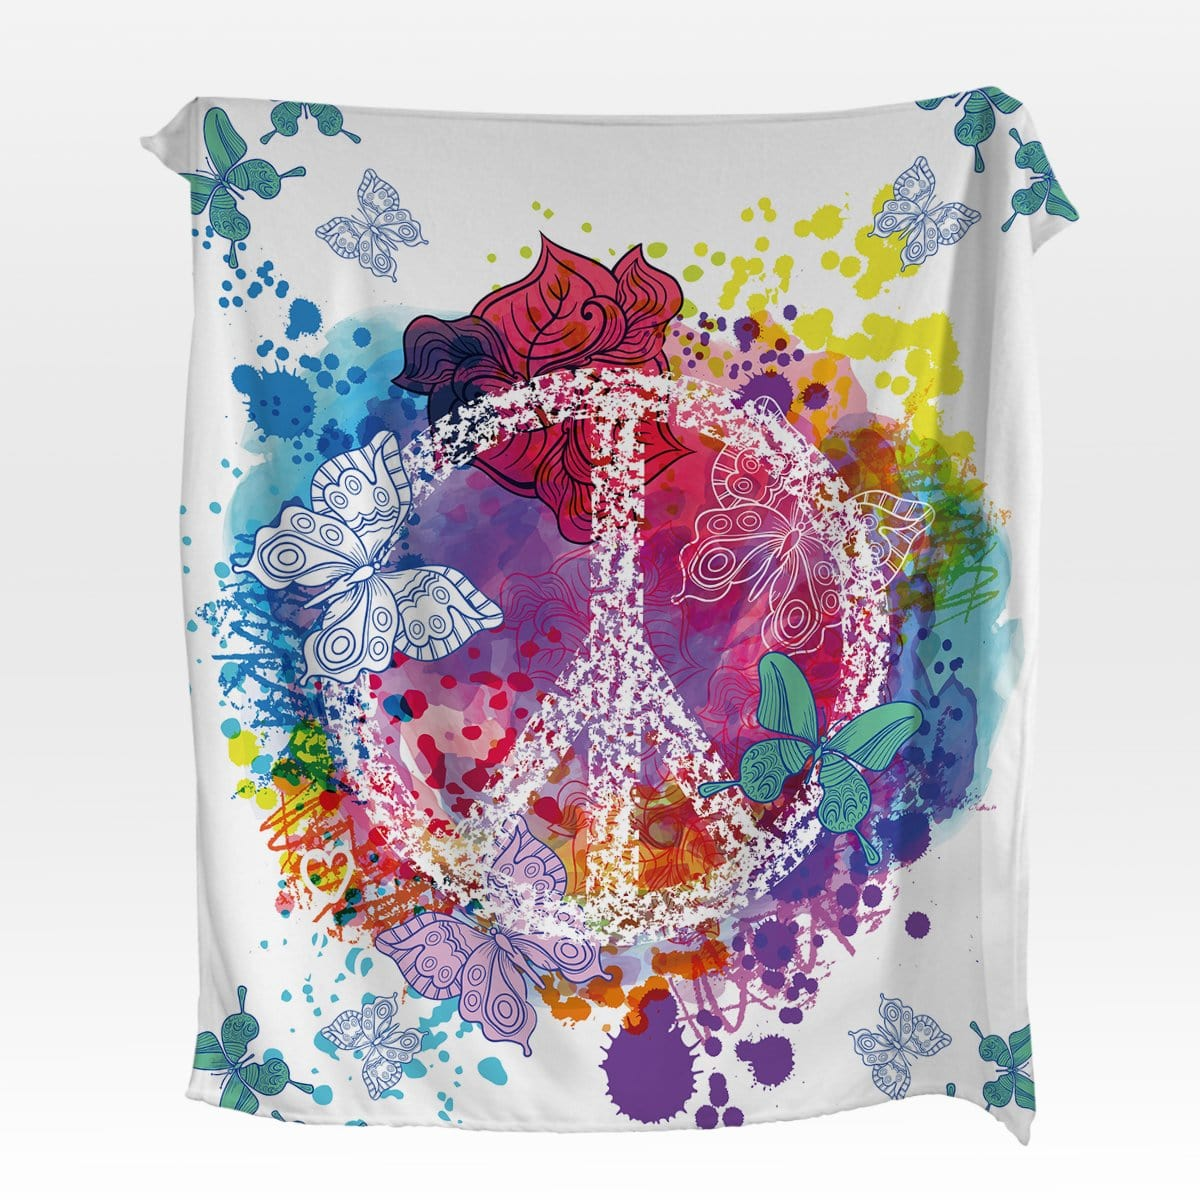 Butterfly Peace Squiffy Minky Blanket-Butterfly Peace-Little Squiffy